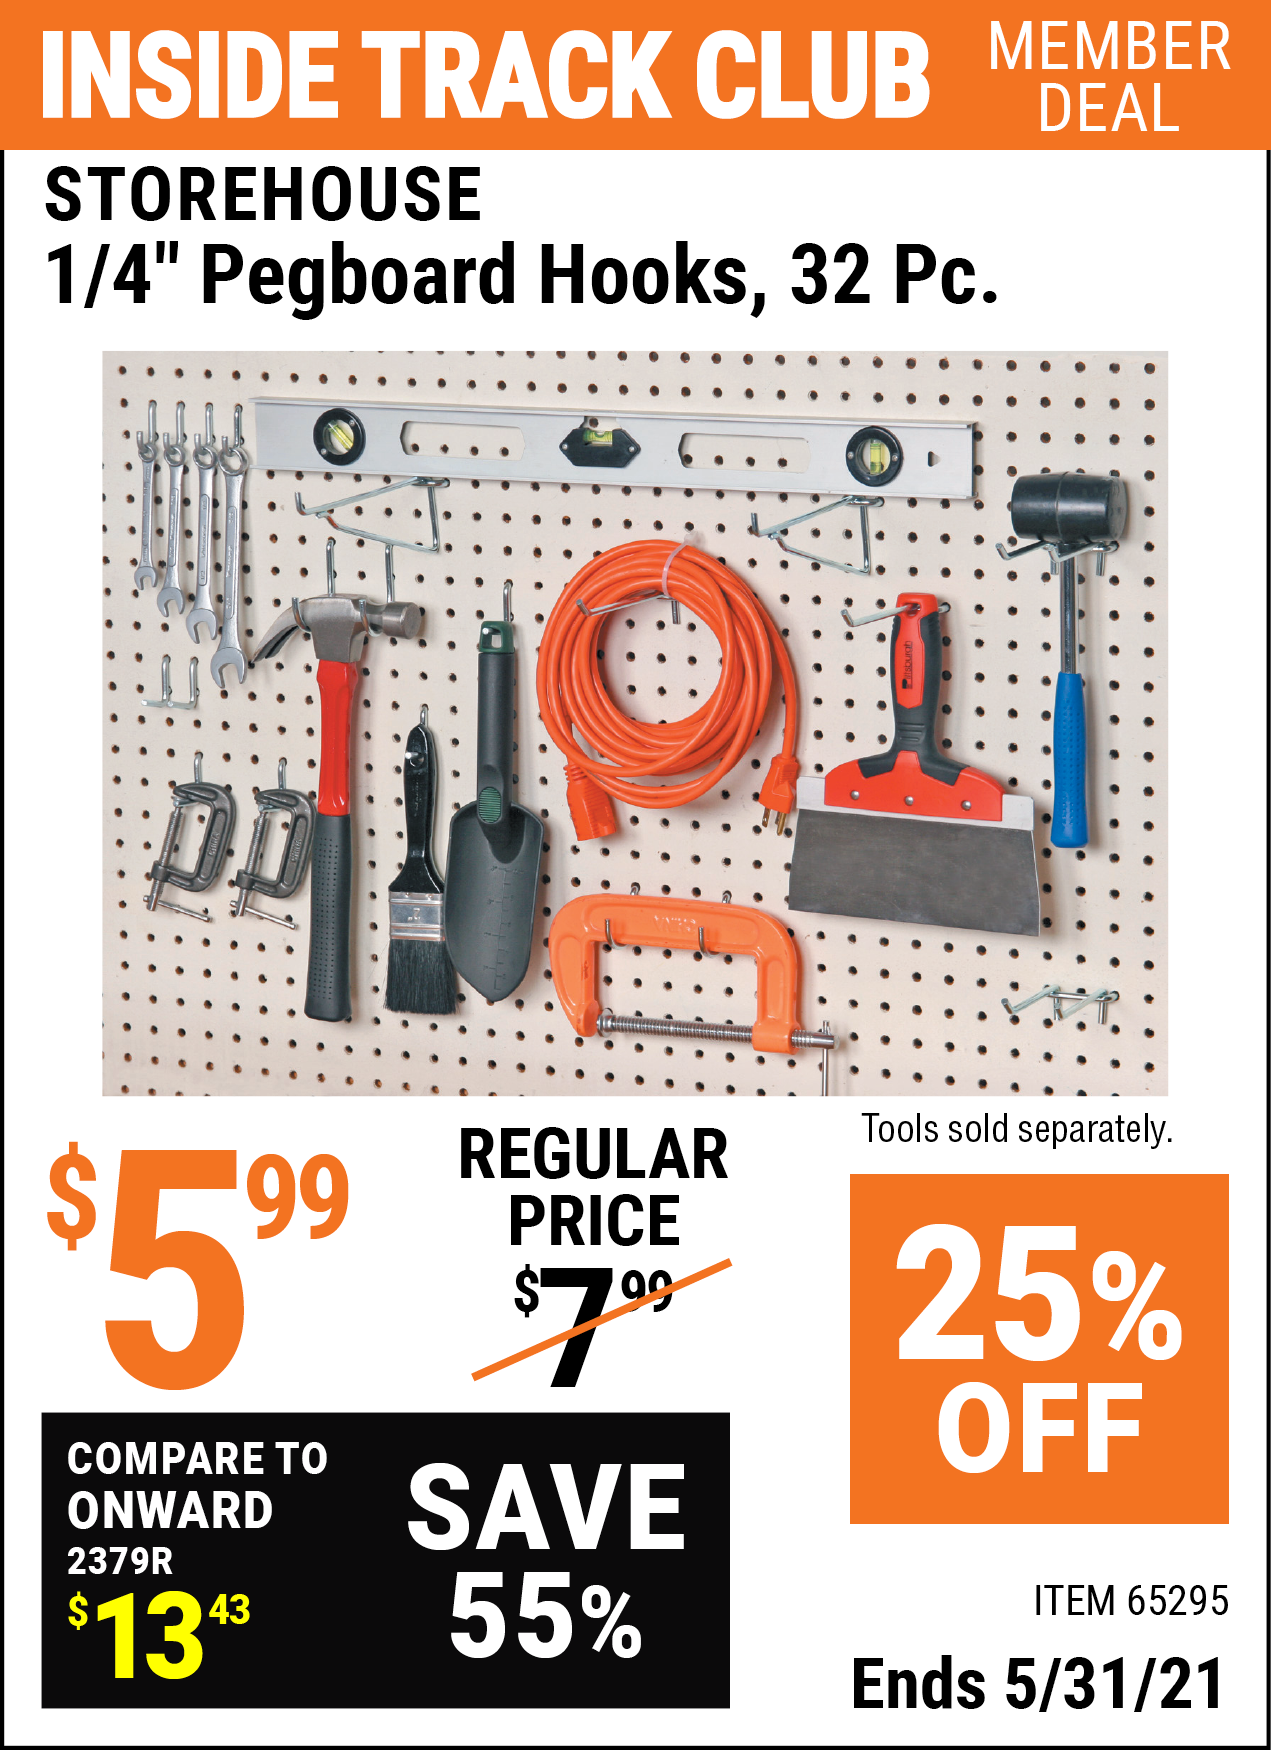 Inside Track Club members can buy the STOREHOUSE 1/4 In Pegboard Hooks 32 Pc. (Item 65295) for $5.99, valid through 5/31/2021.